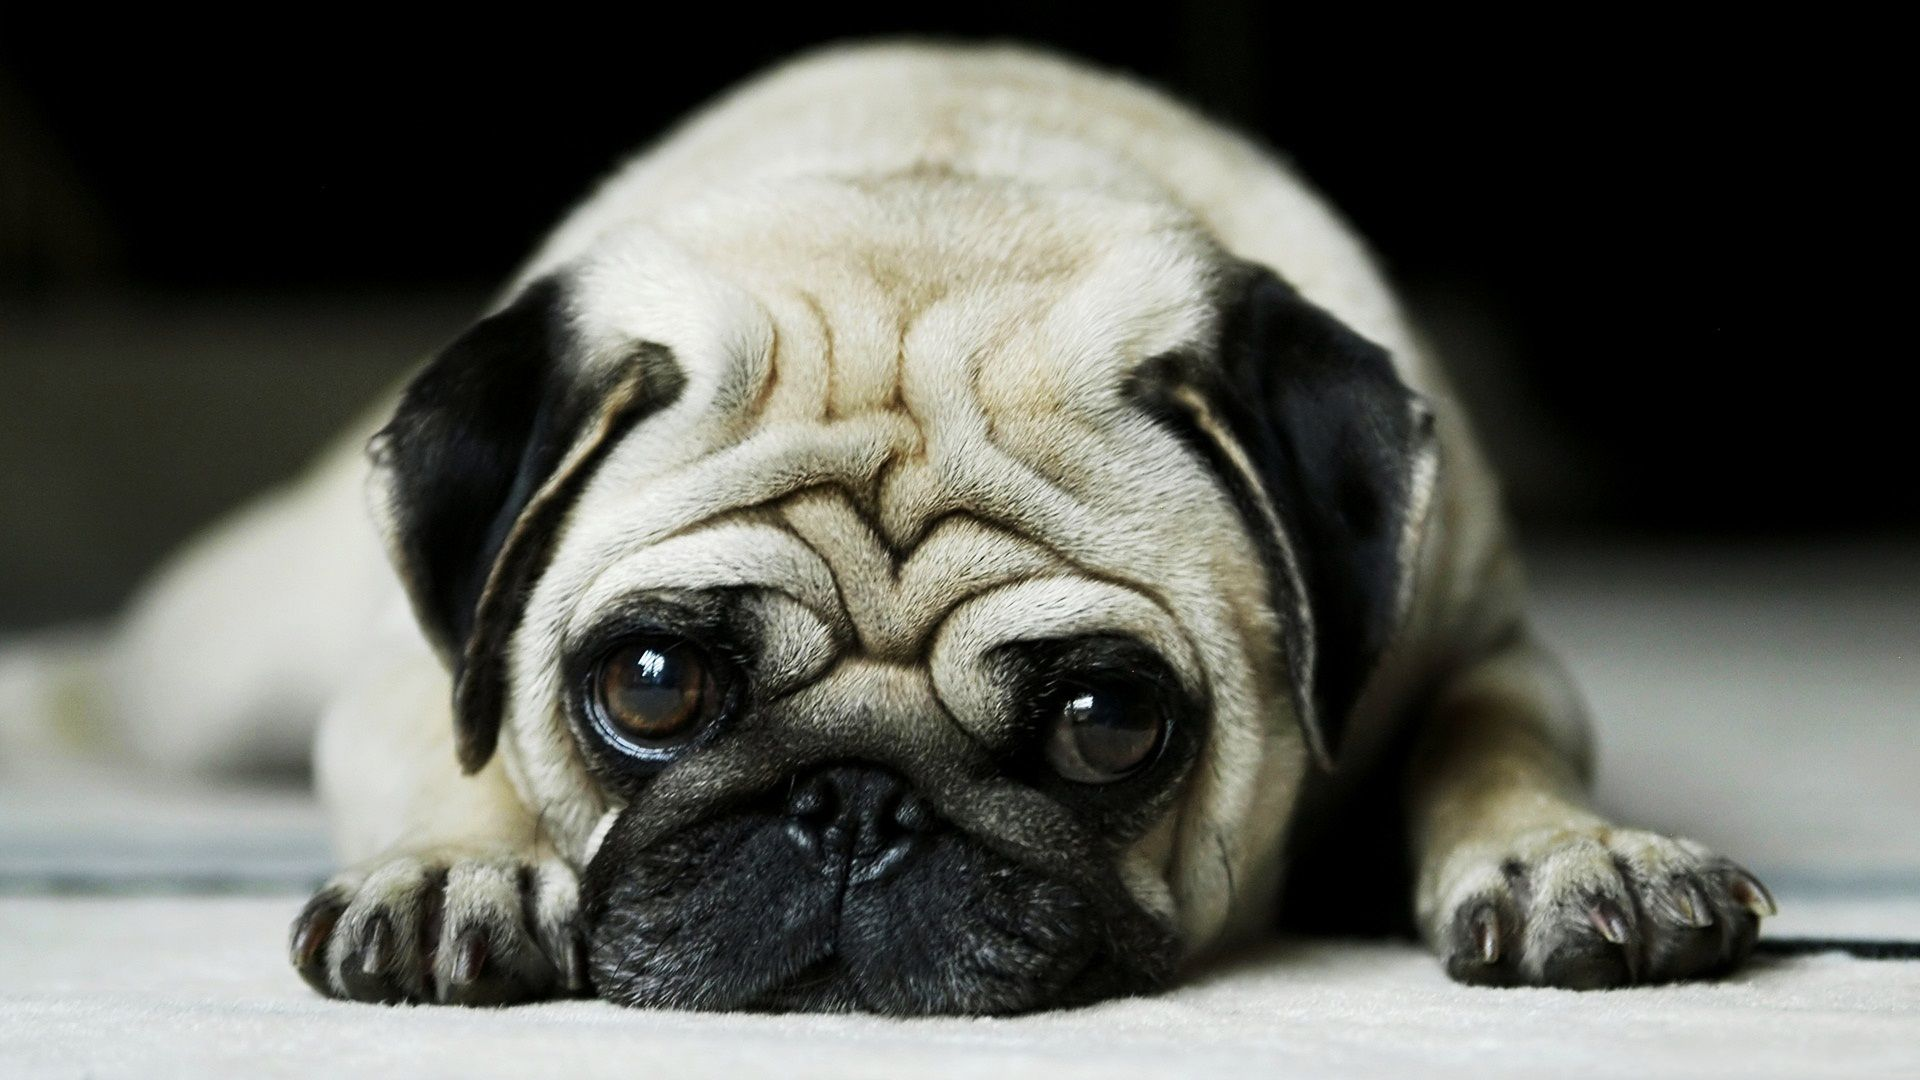 Pin By 56 Pic On Hd Wallpaper Cute Pugs Pugs Cute Baby Animals